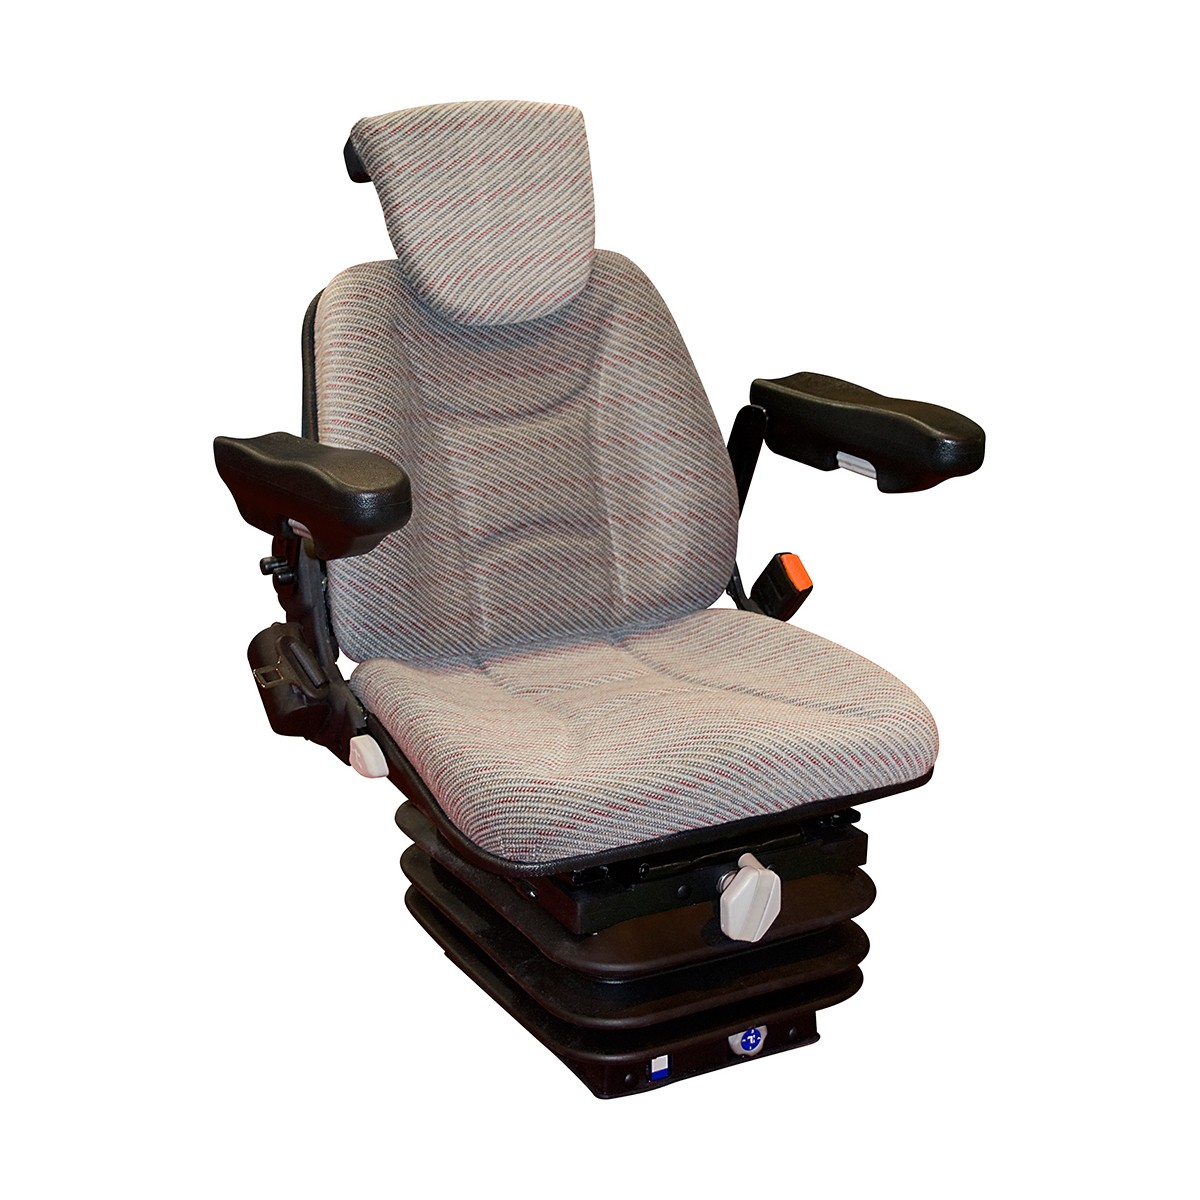 Asientos Para Tractores Asiento Tractor Rm62 200 M Brz Cbz Tela Gris